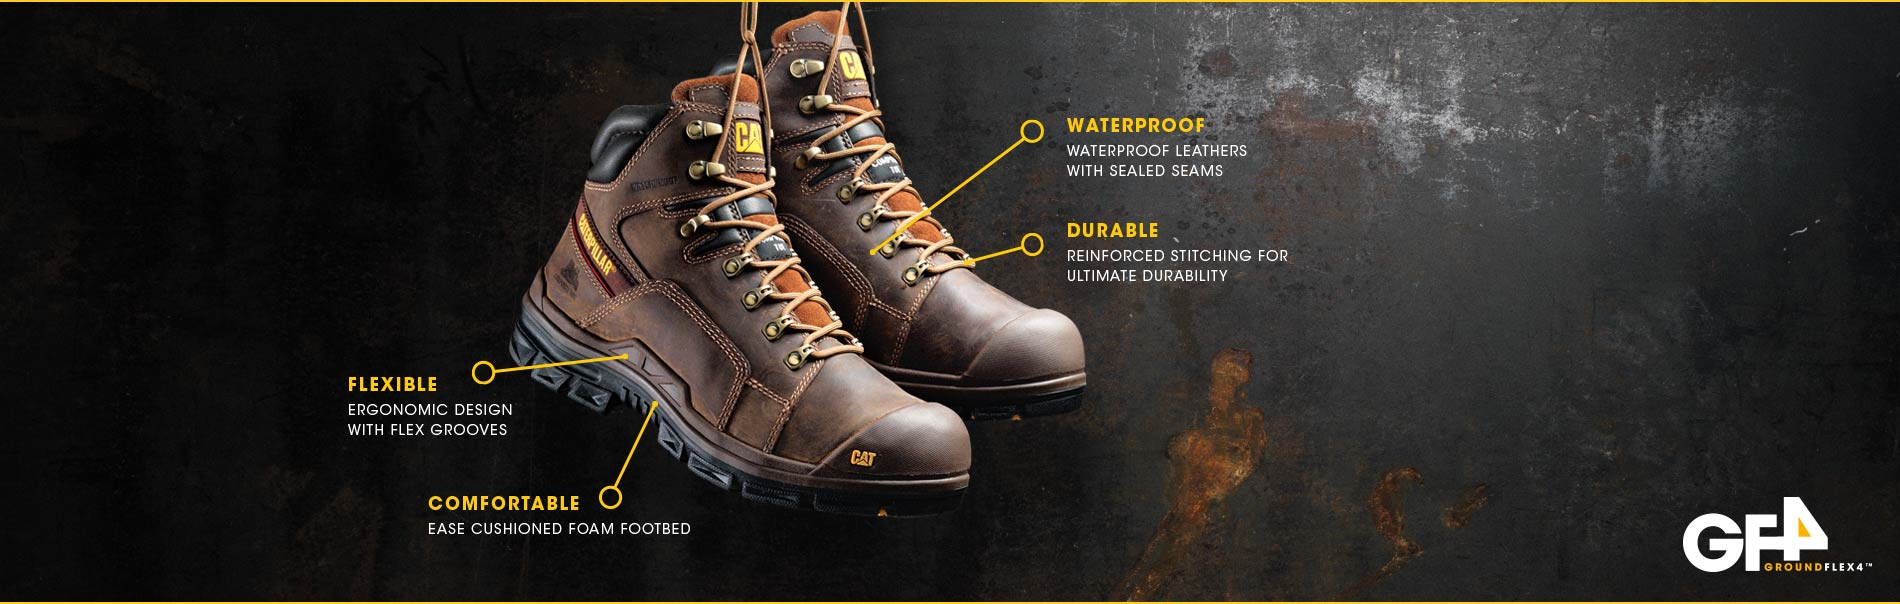 Flexible / comfortable / waterproof / durable